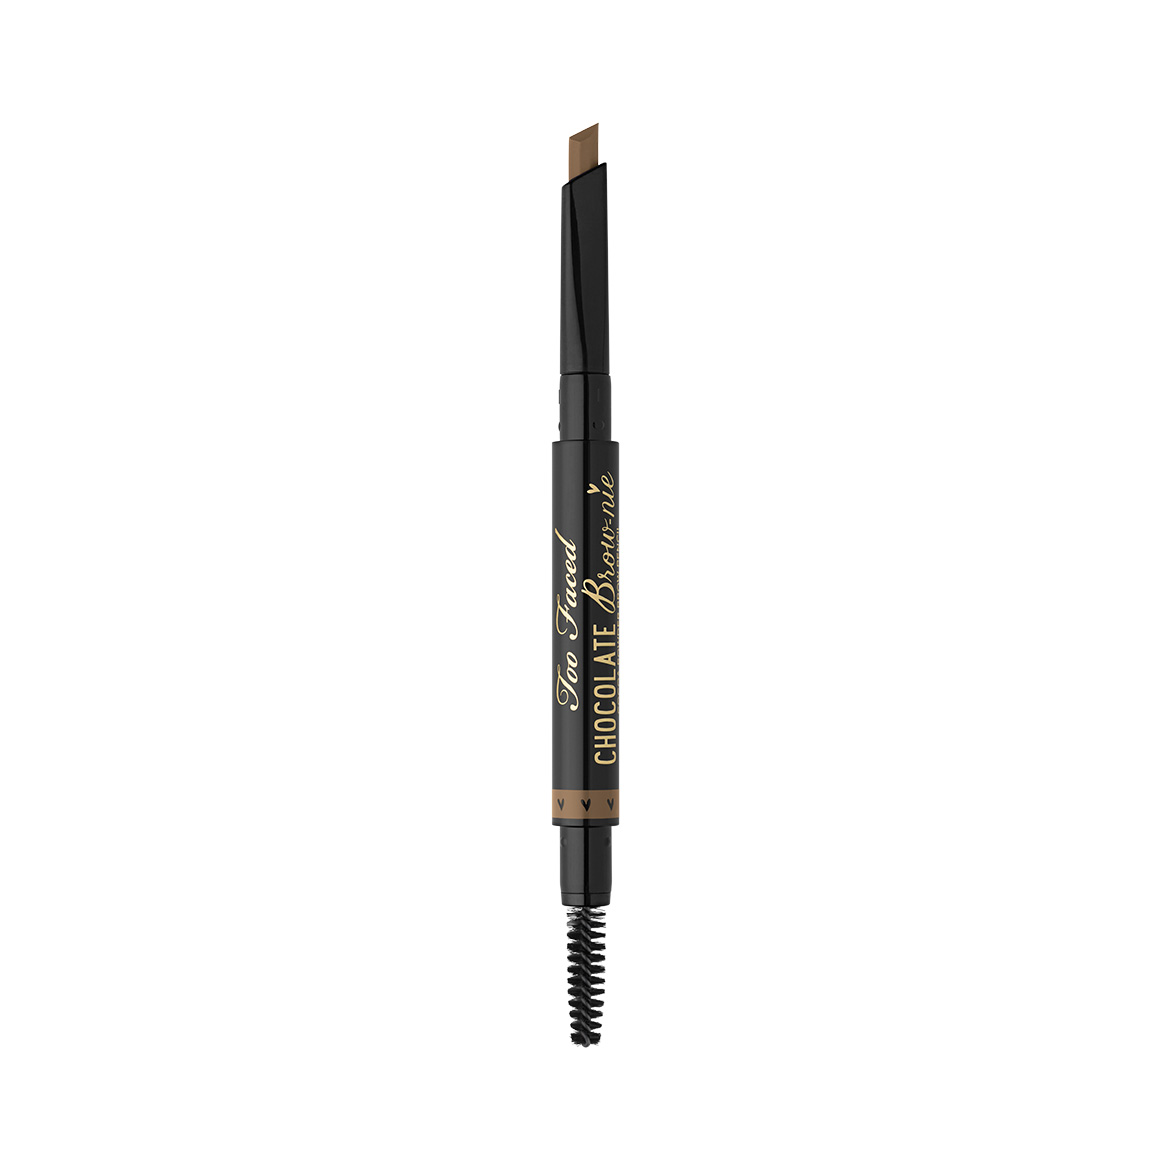 Too Faced Chocolate Brow-Nie Cocoa Powder Brow Pencil